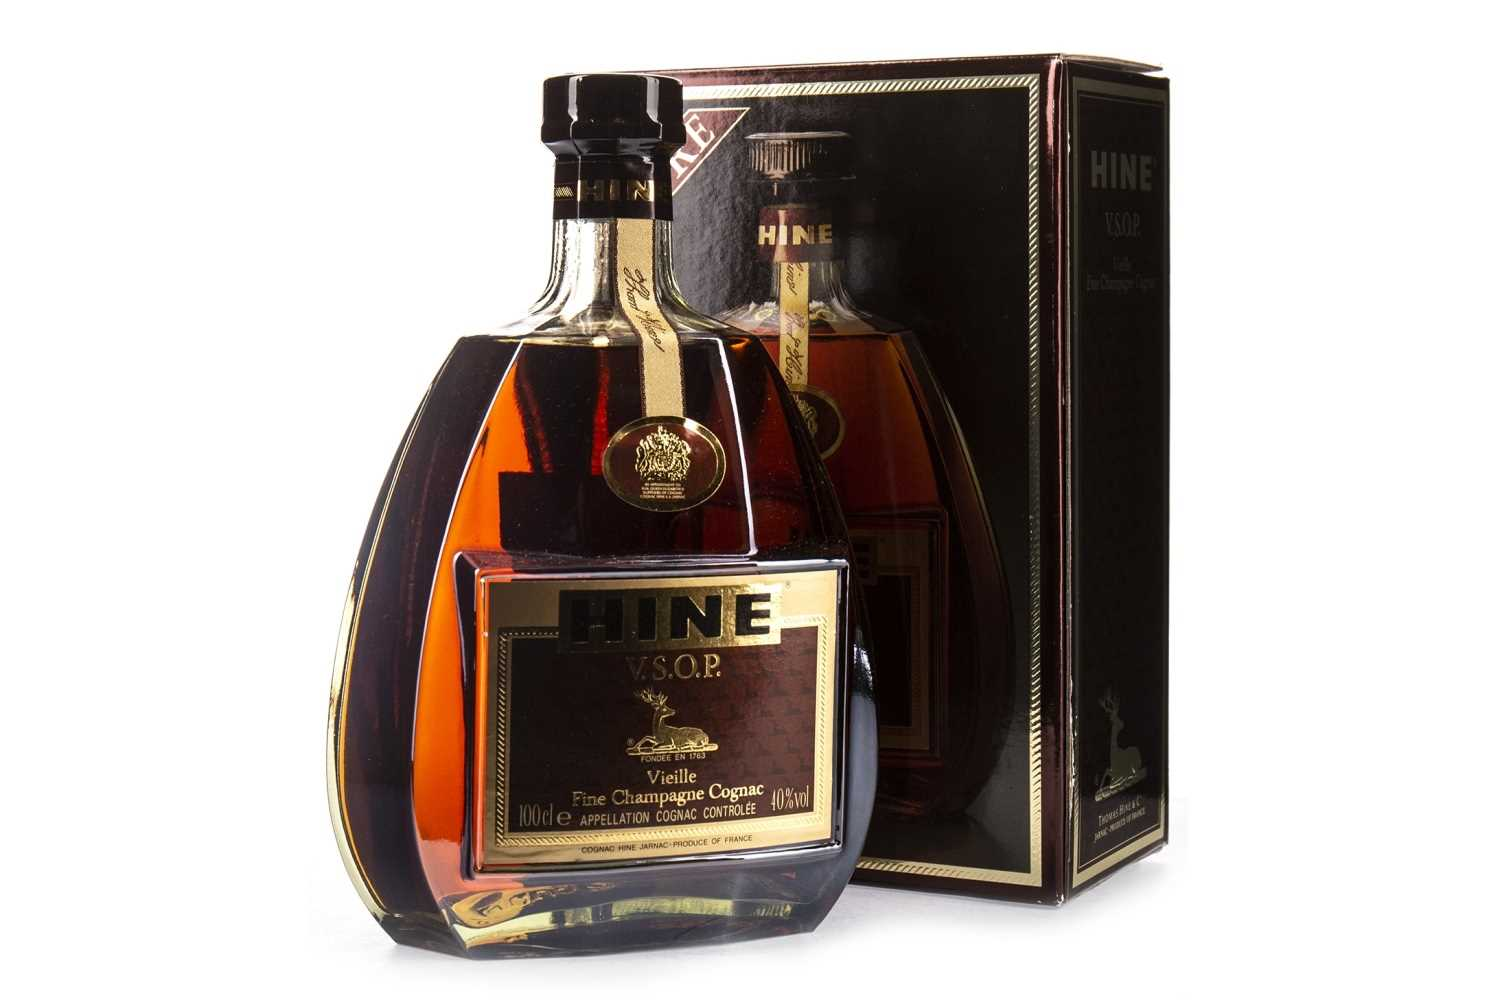 Lot 2015-HINE VSOP - ONE LITRE